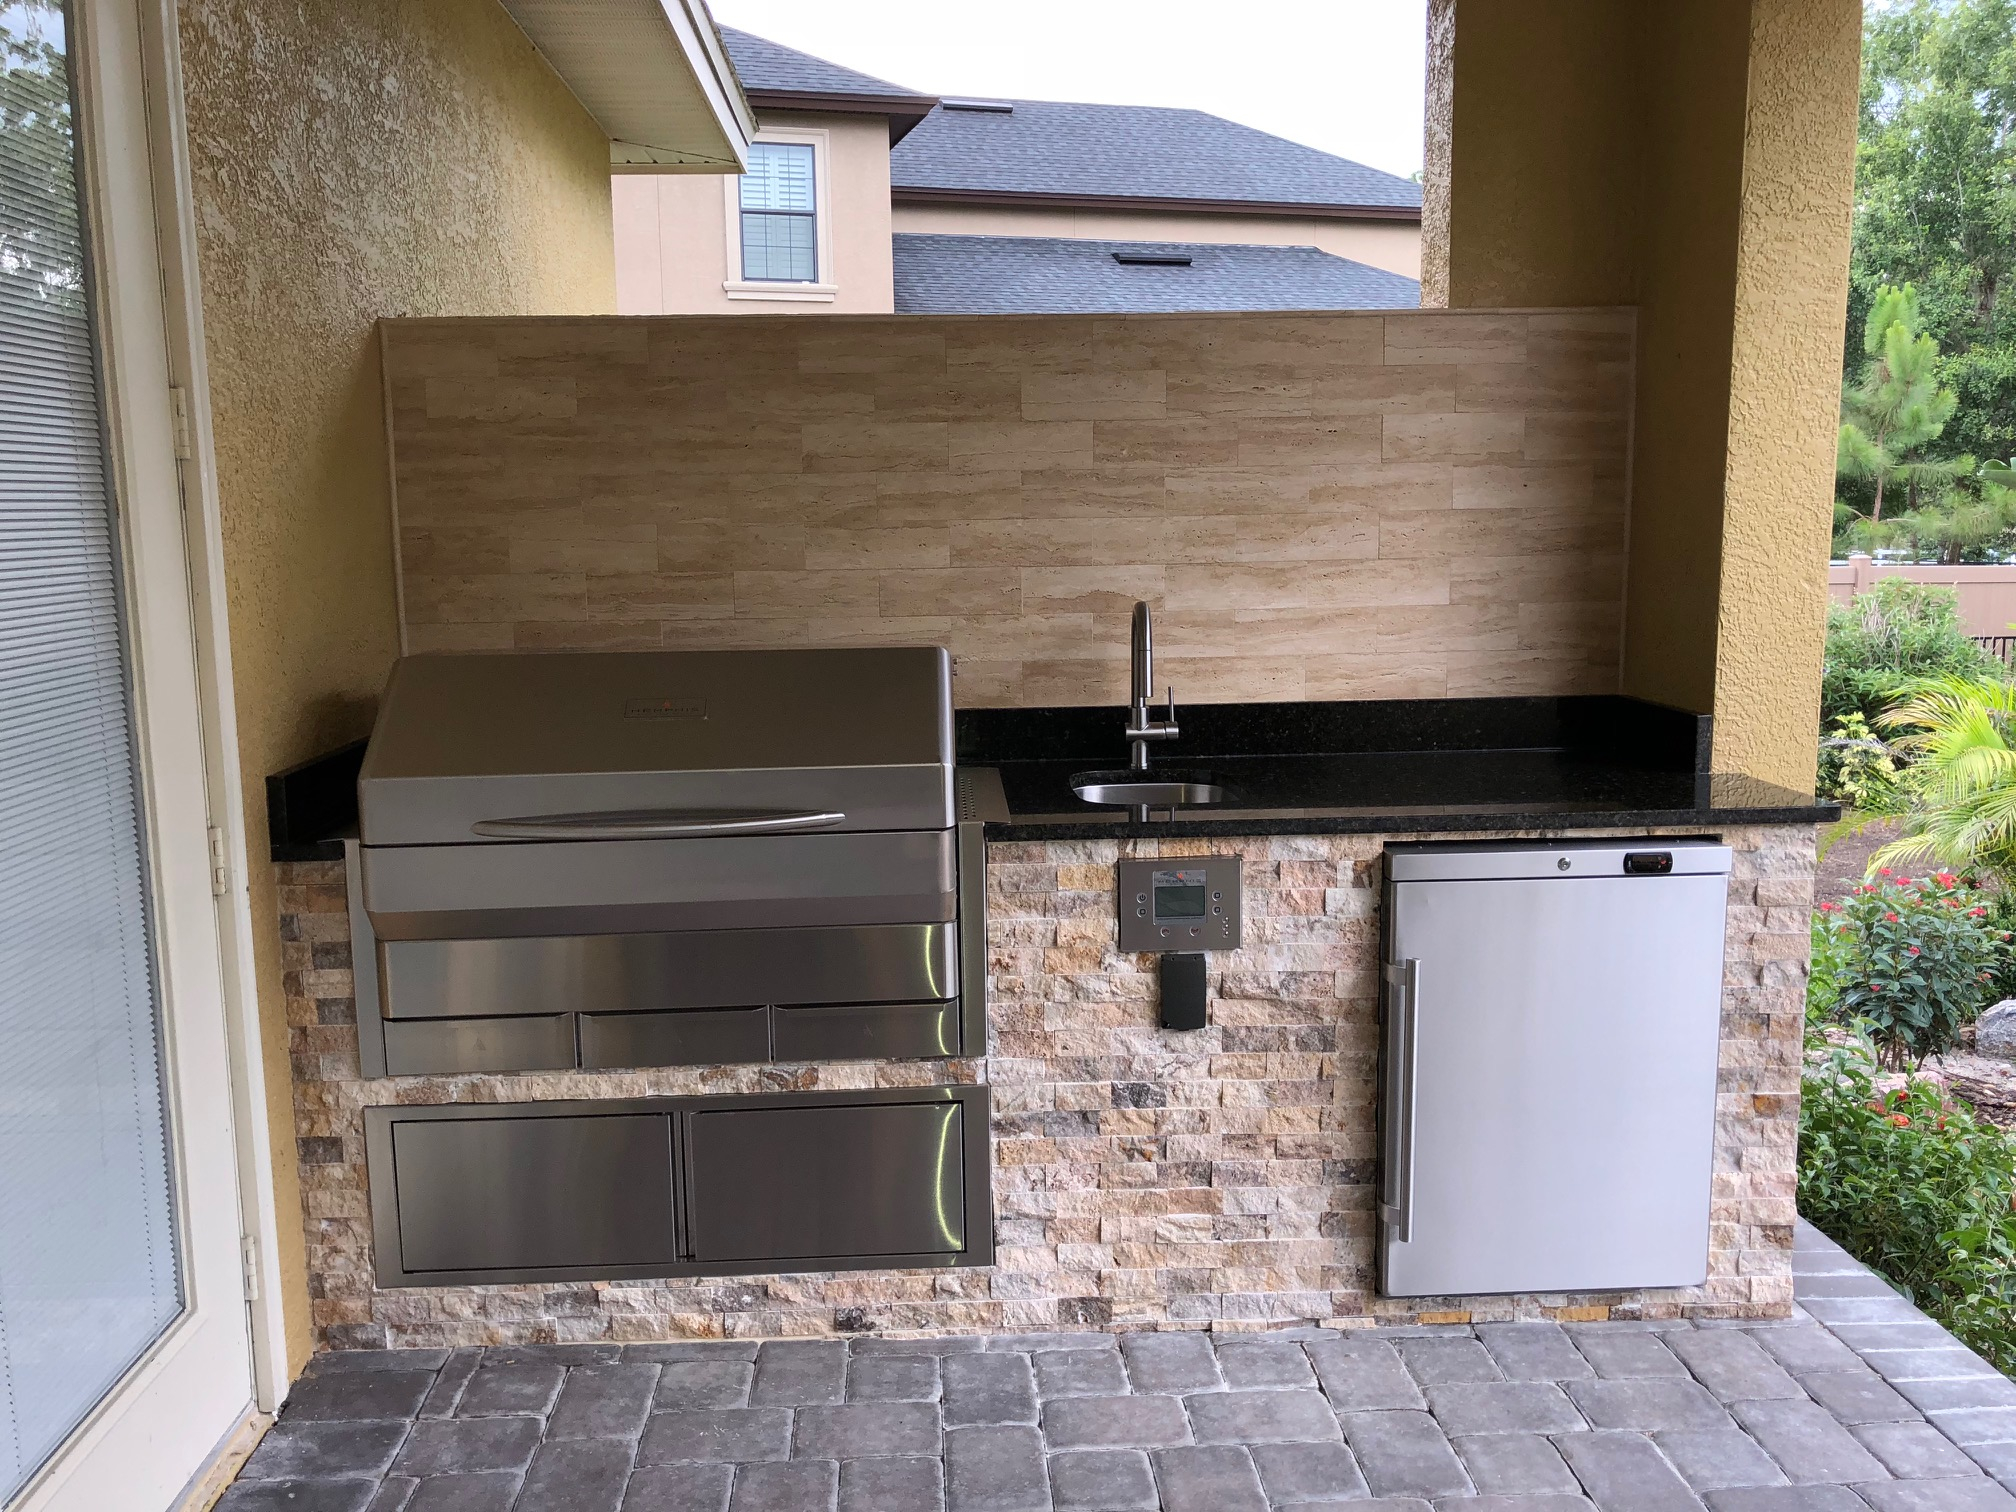 memphis grill outdoor kitchen